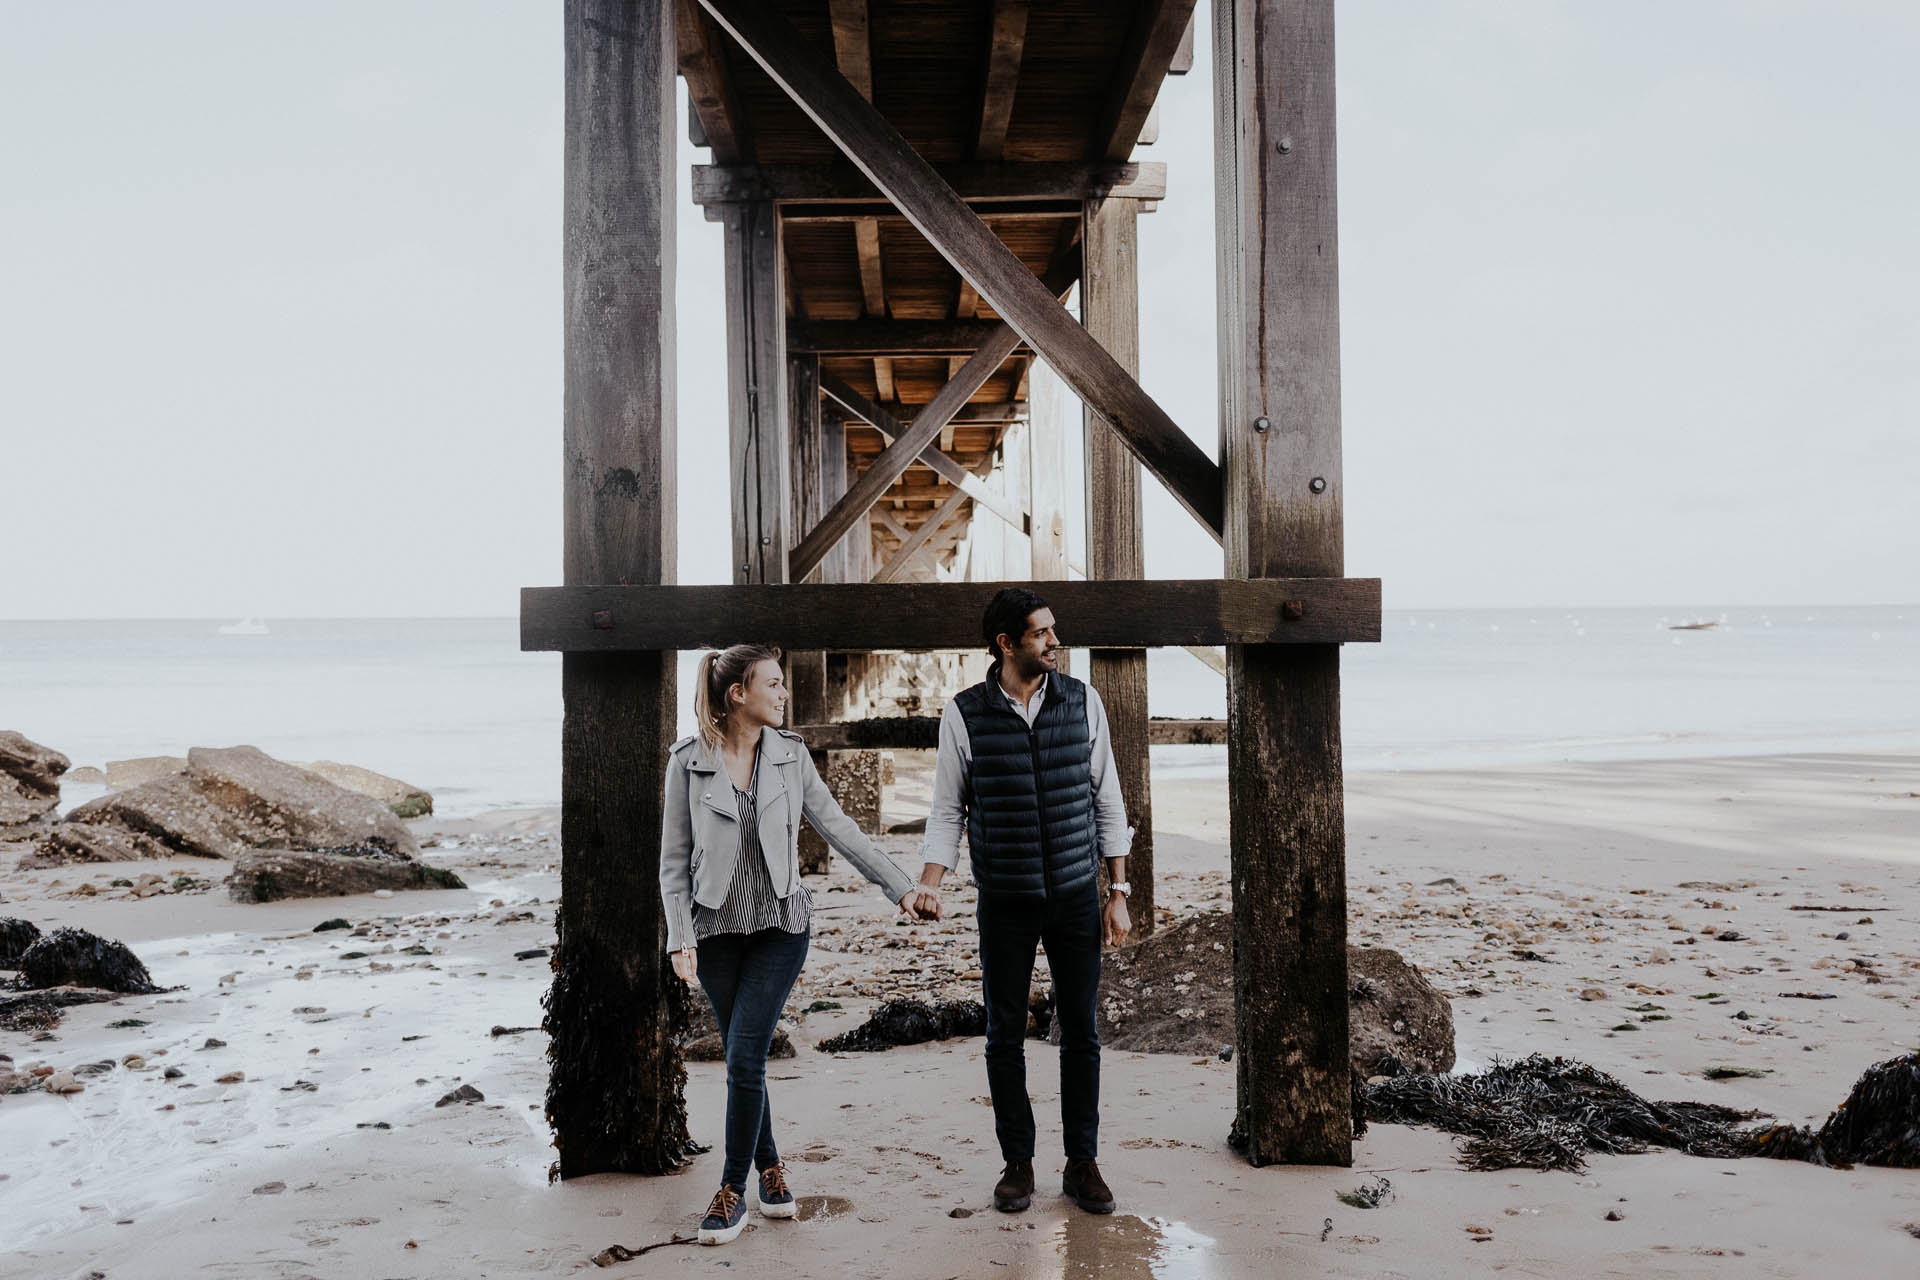 séance_engagement_noirmoutier_flavie_nelly_photographe_nantes-7